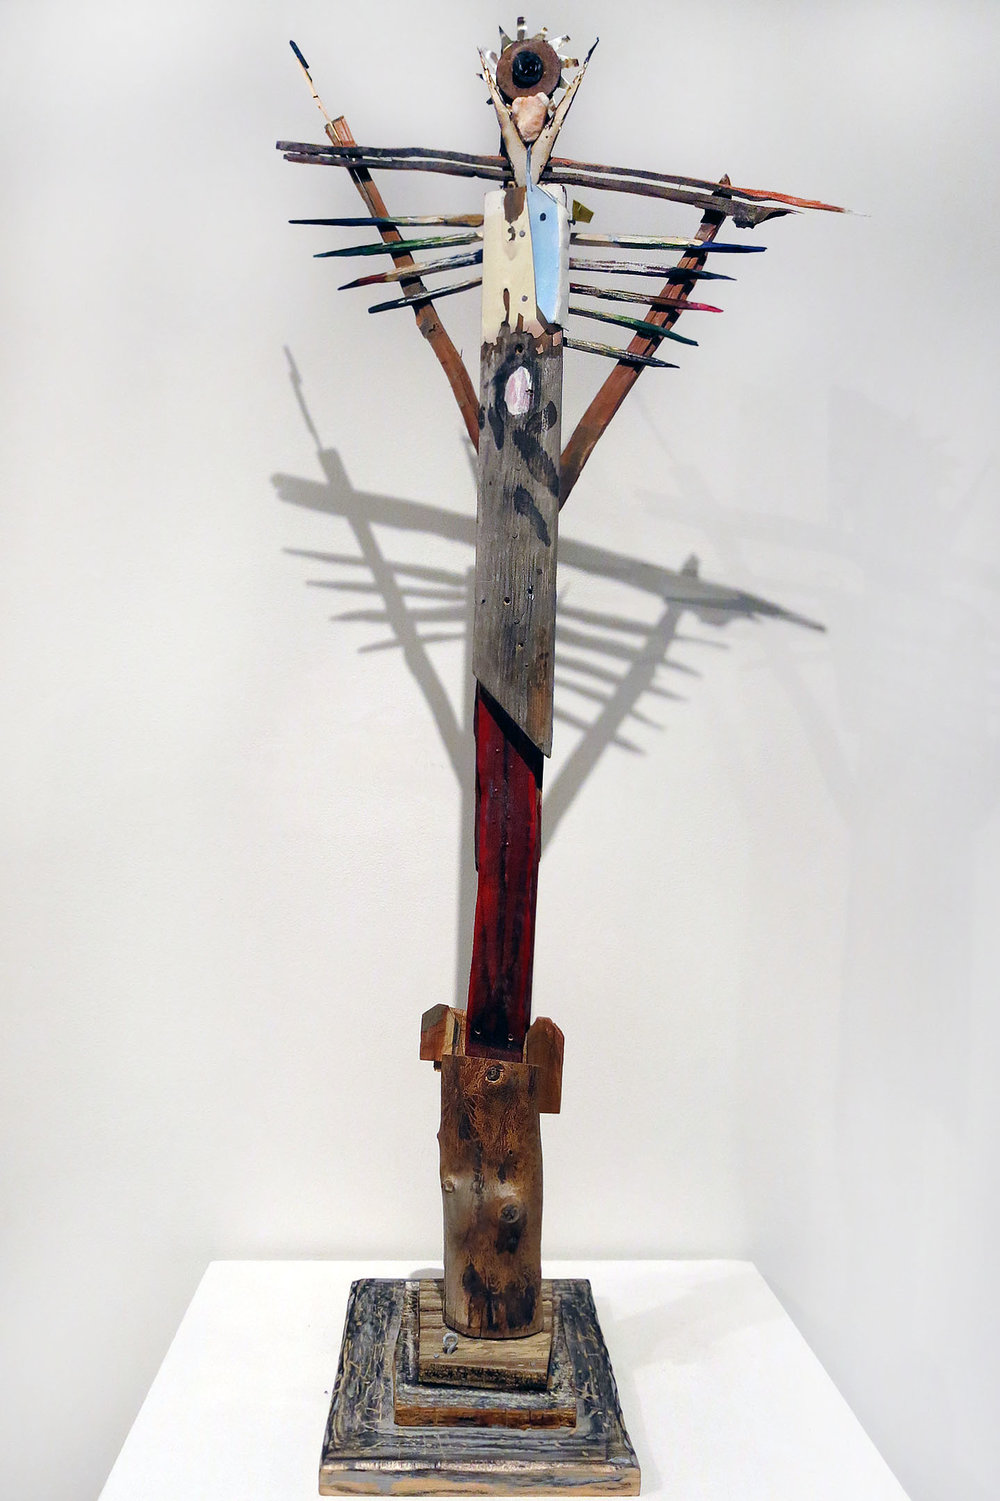 Matt Blackwell,  Diety (Santos Figure),  2015, wood, metal, oil paint, ink, 36.25h x 7.125w x 11d in.